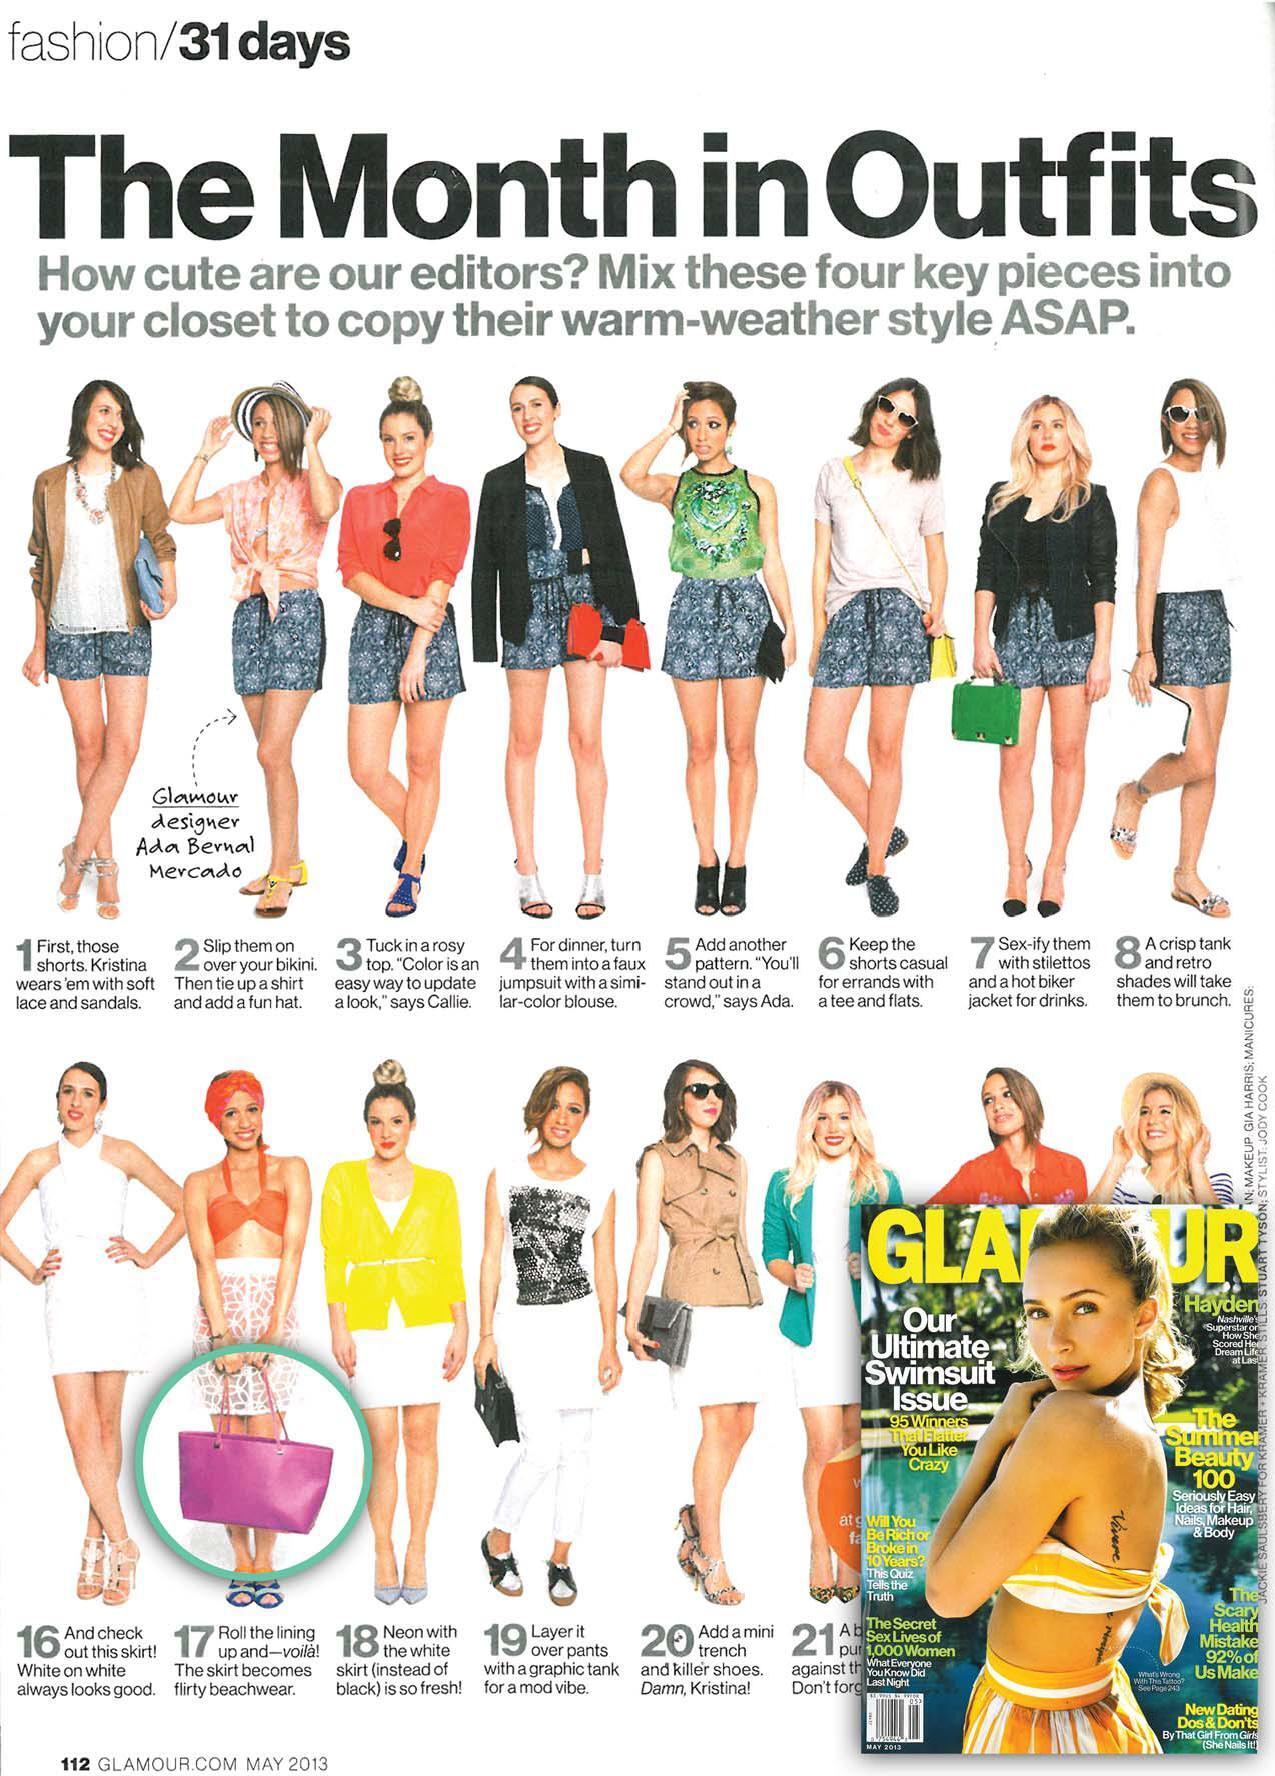 RT @IvankaTrump: My Julia Double Shoulder bag in Fuschia in @glamourmag's The Month in Outfits feature http://t.co/CAc74WKic1